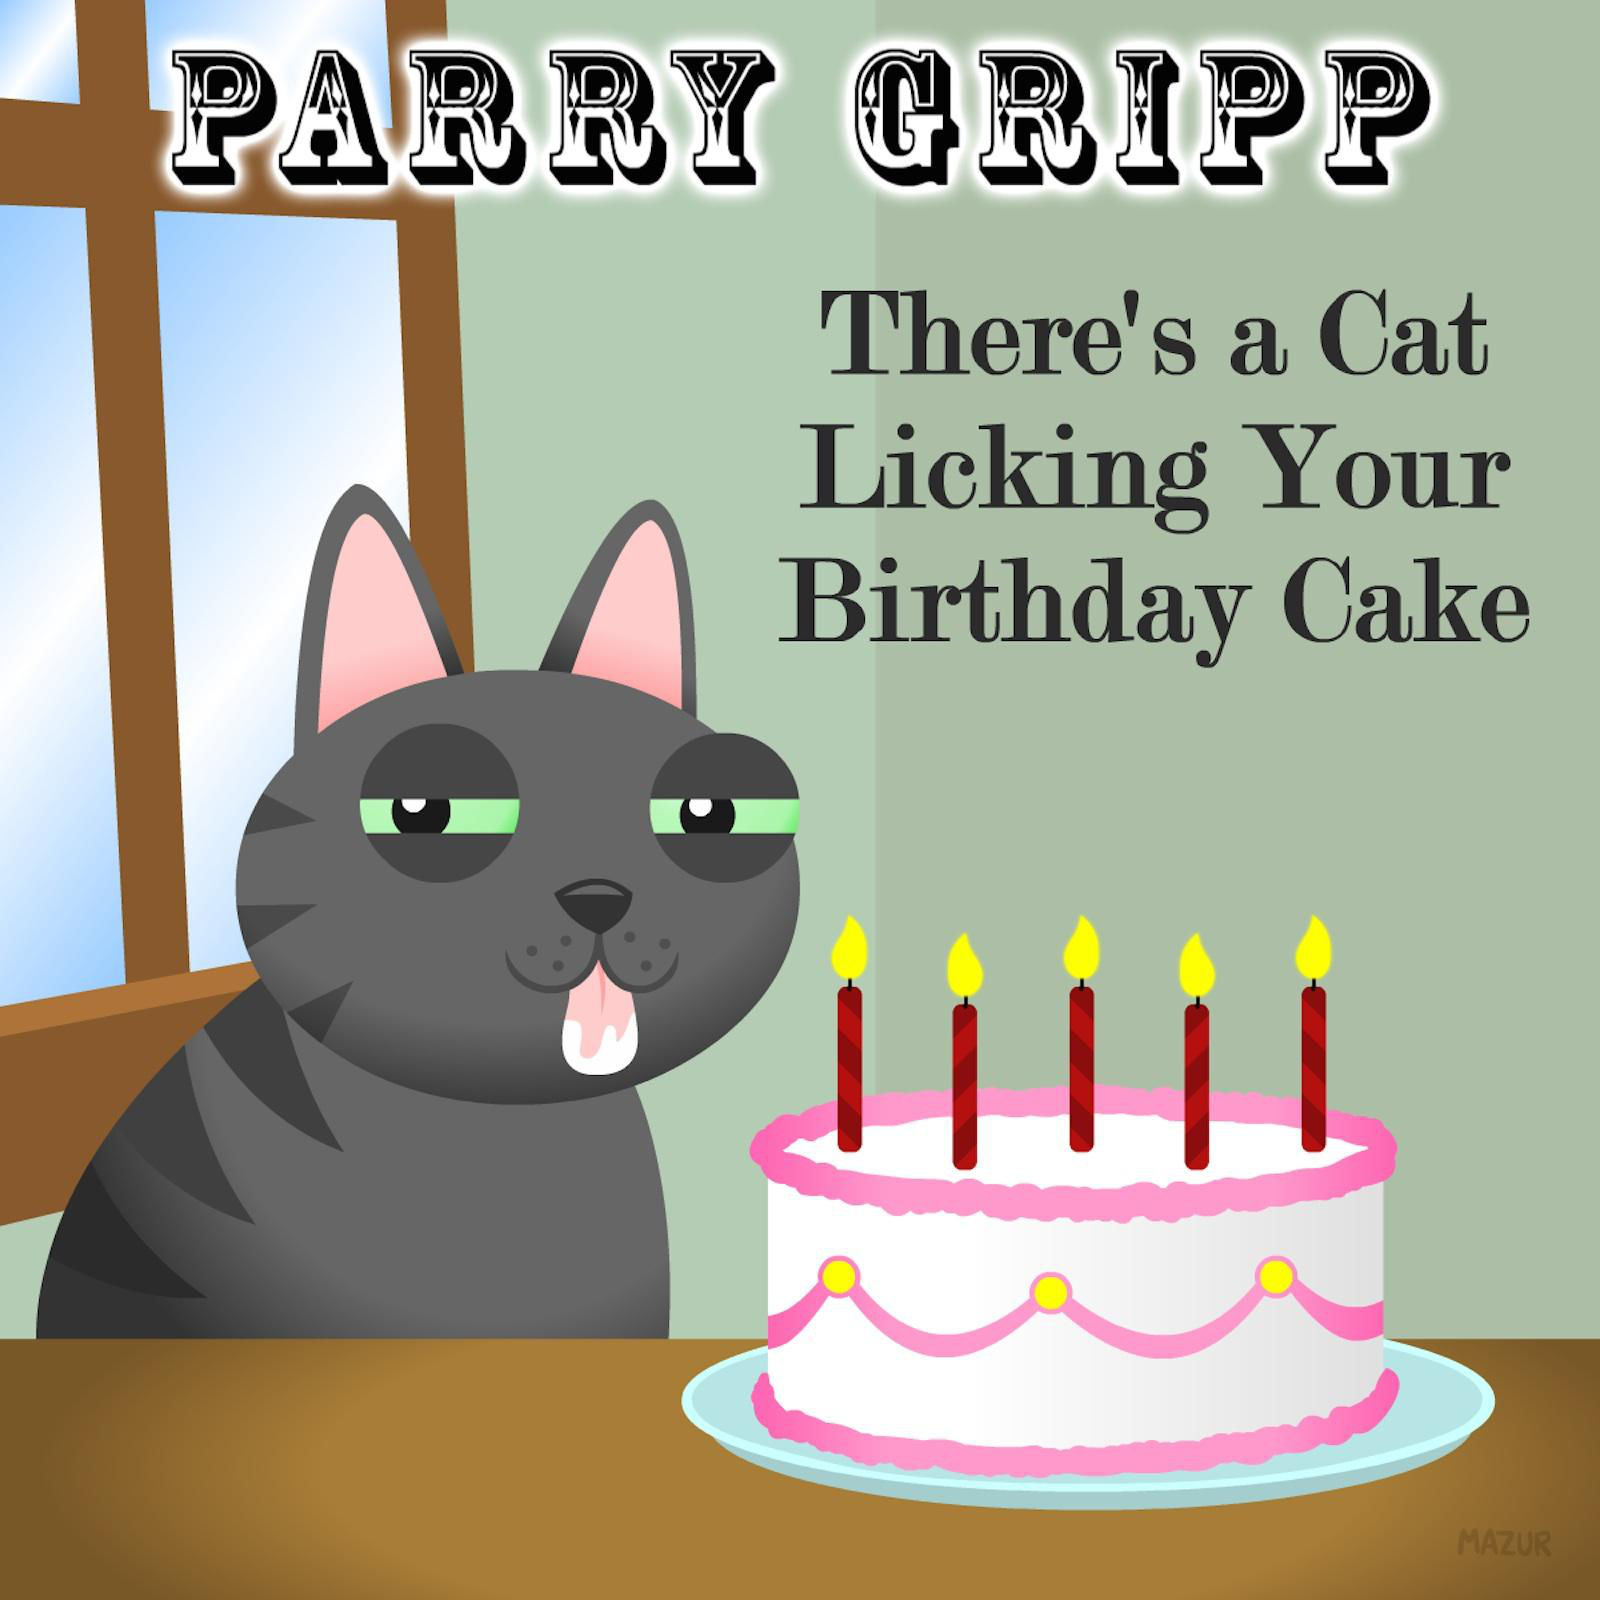 Best ideas about Cat Licking Your Birthday Cake . Save or Pin There s a Cat Licking Your Birthday Cake Single by Parry Now.